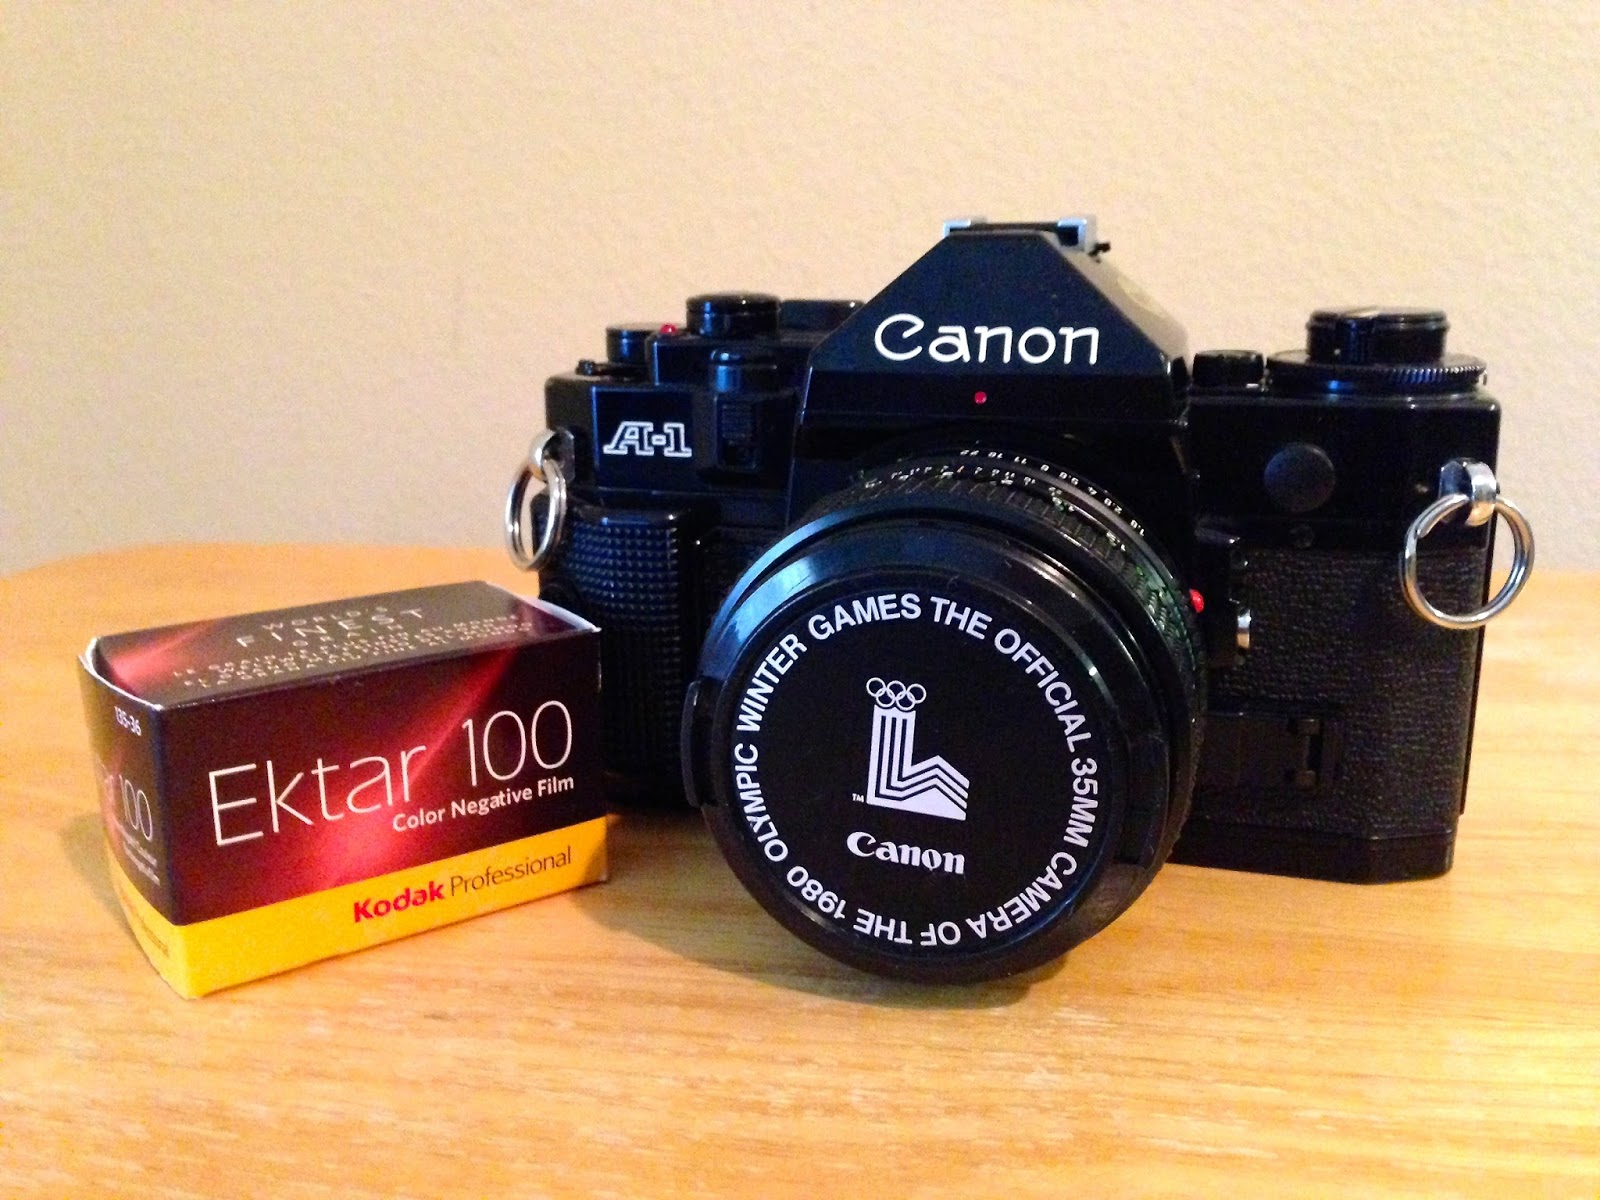 Canon A-1 with box of Kodak Ektar 100 film